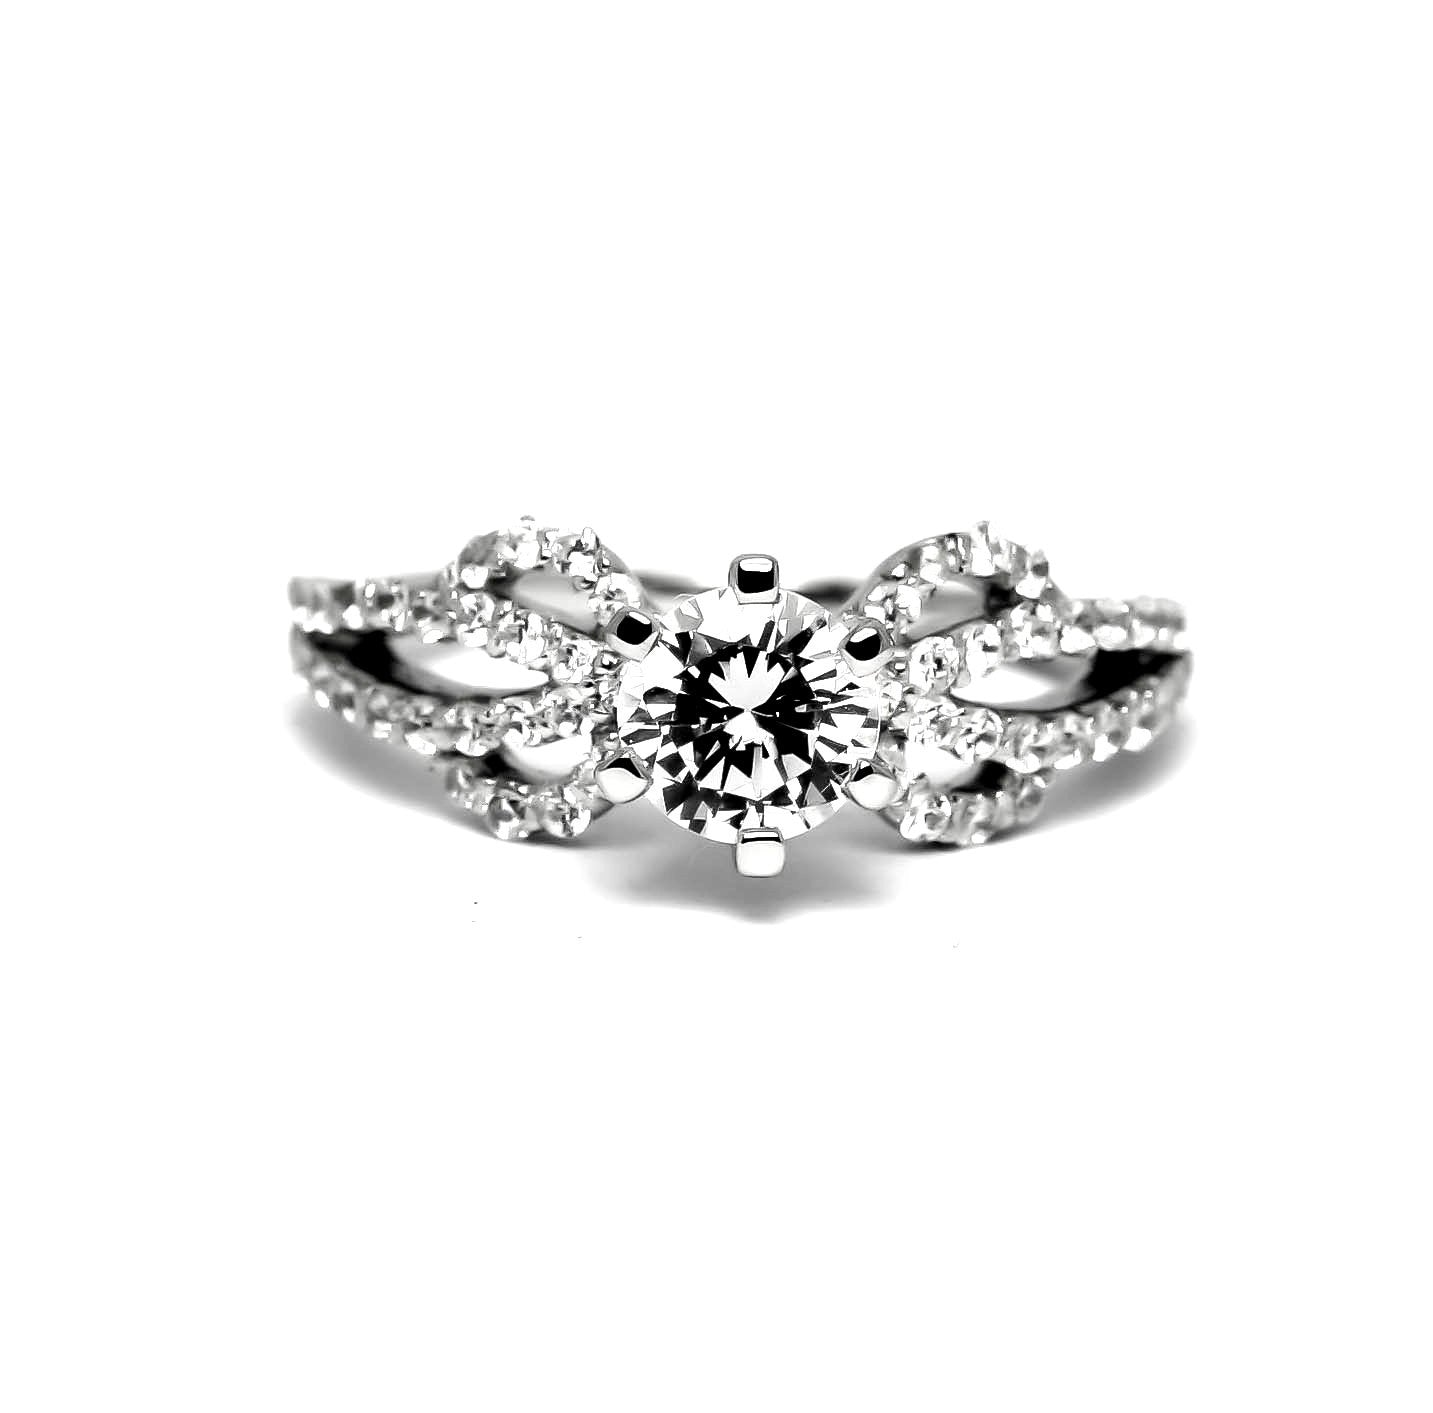 "Unique Split Shank Diamond Engagement & Wedding Ring Set, Unique Wedding Set Design, 6.5 mm ""Forever Brilliant"" Moissanite Anniversary Ring - FBY11576"